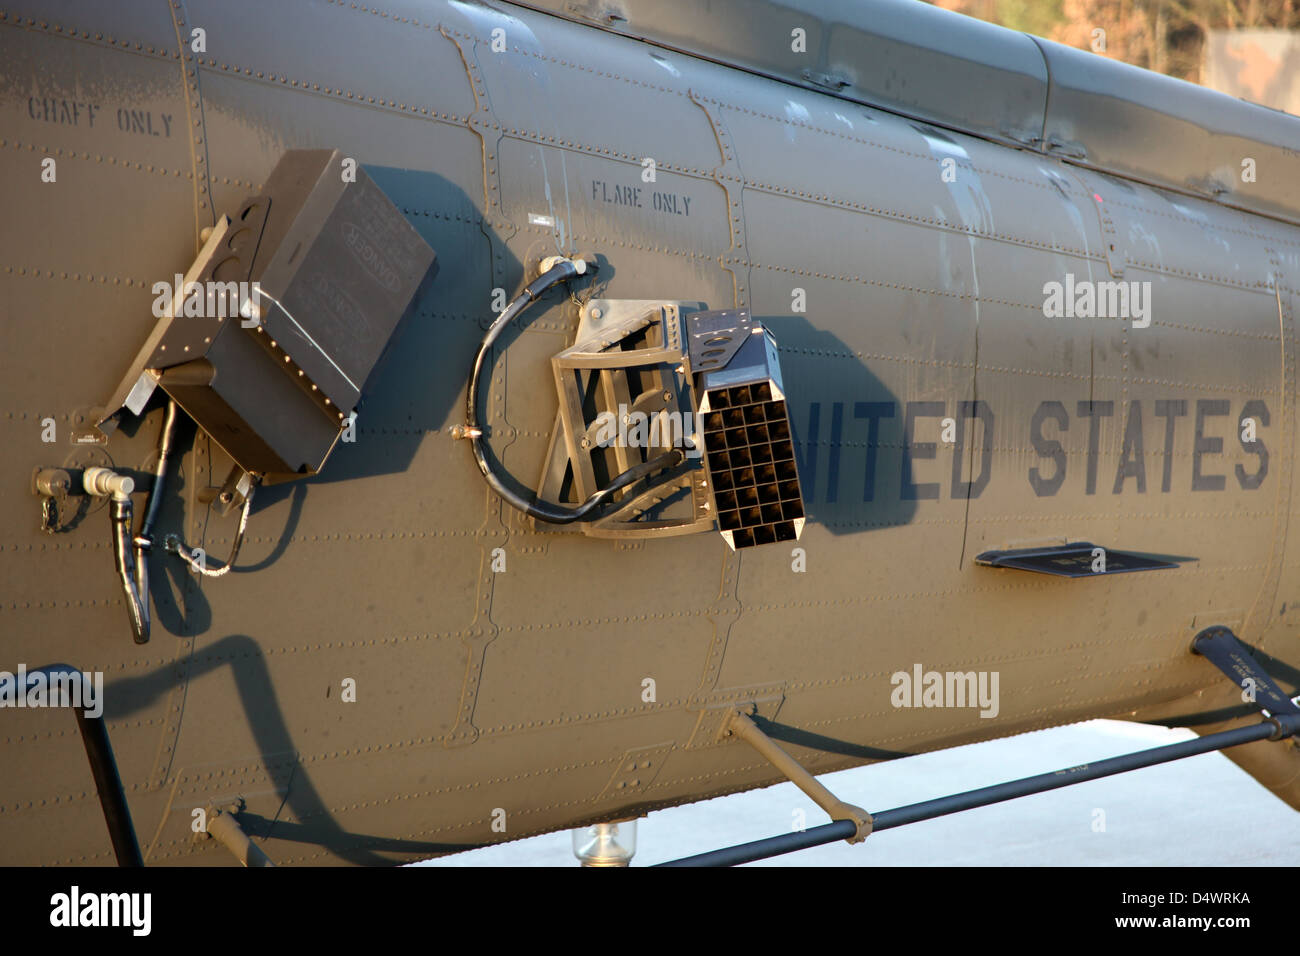 Chaff and flare dispensers on a U.S. Army UH-60L Blackhawk. - Stock Image